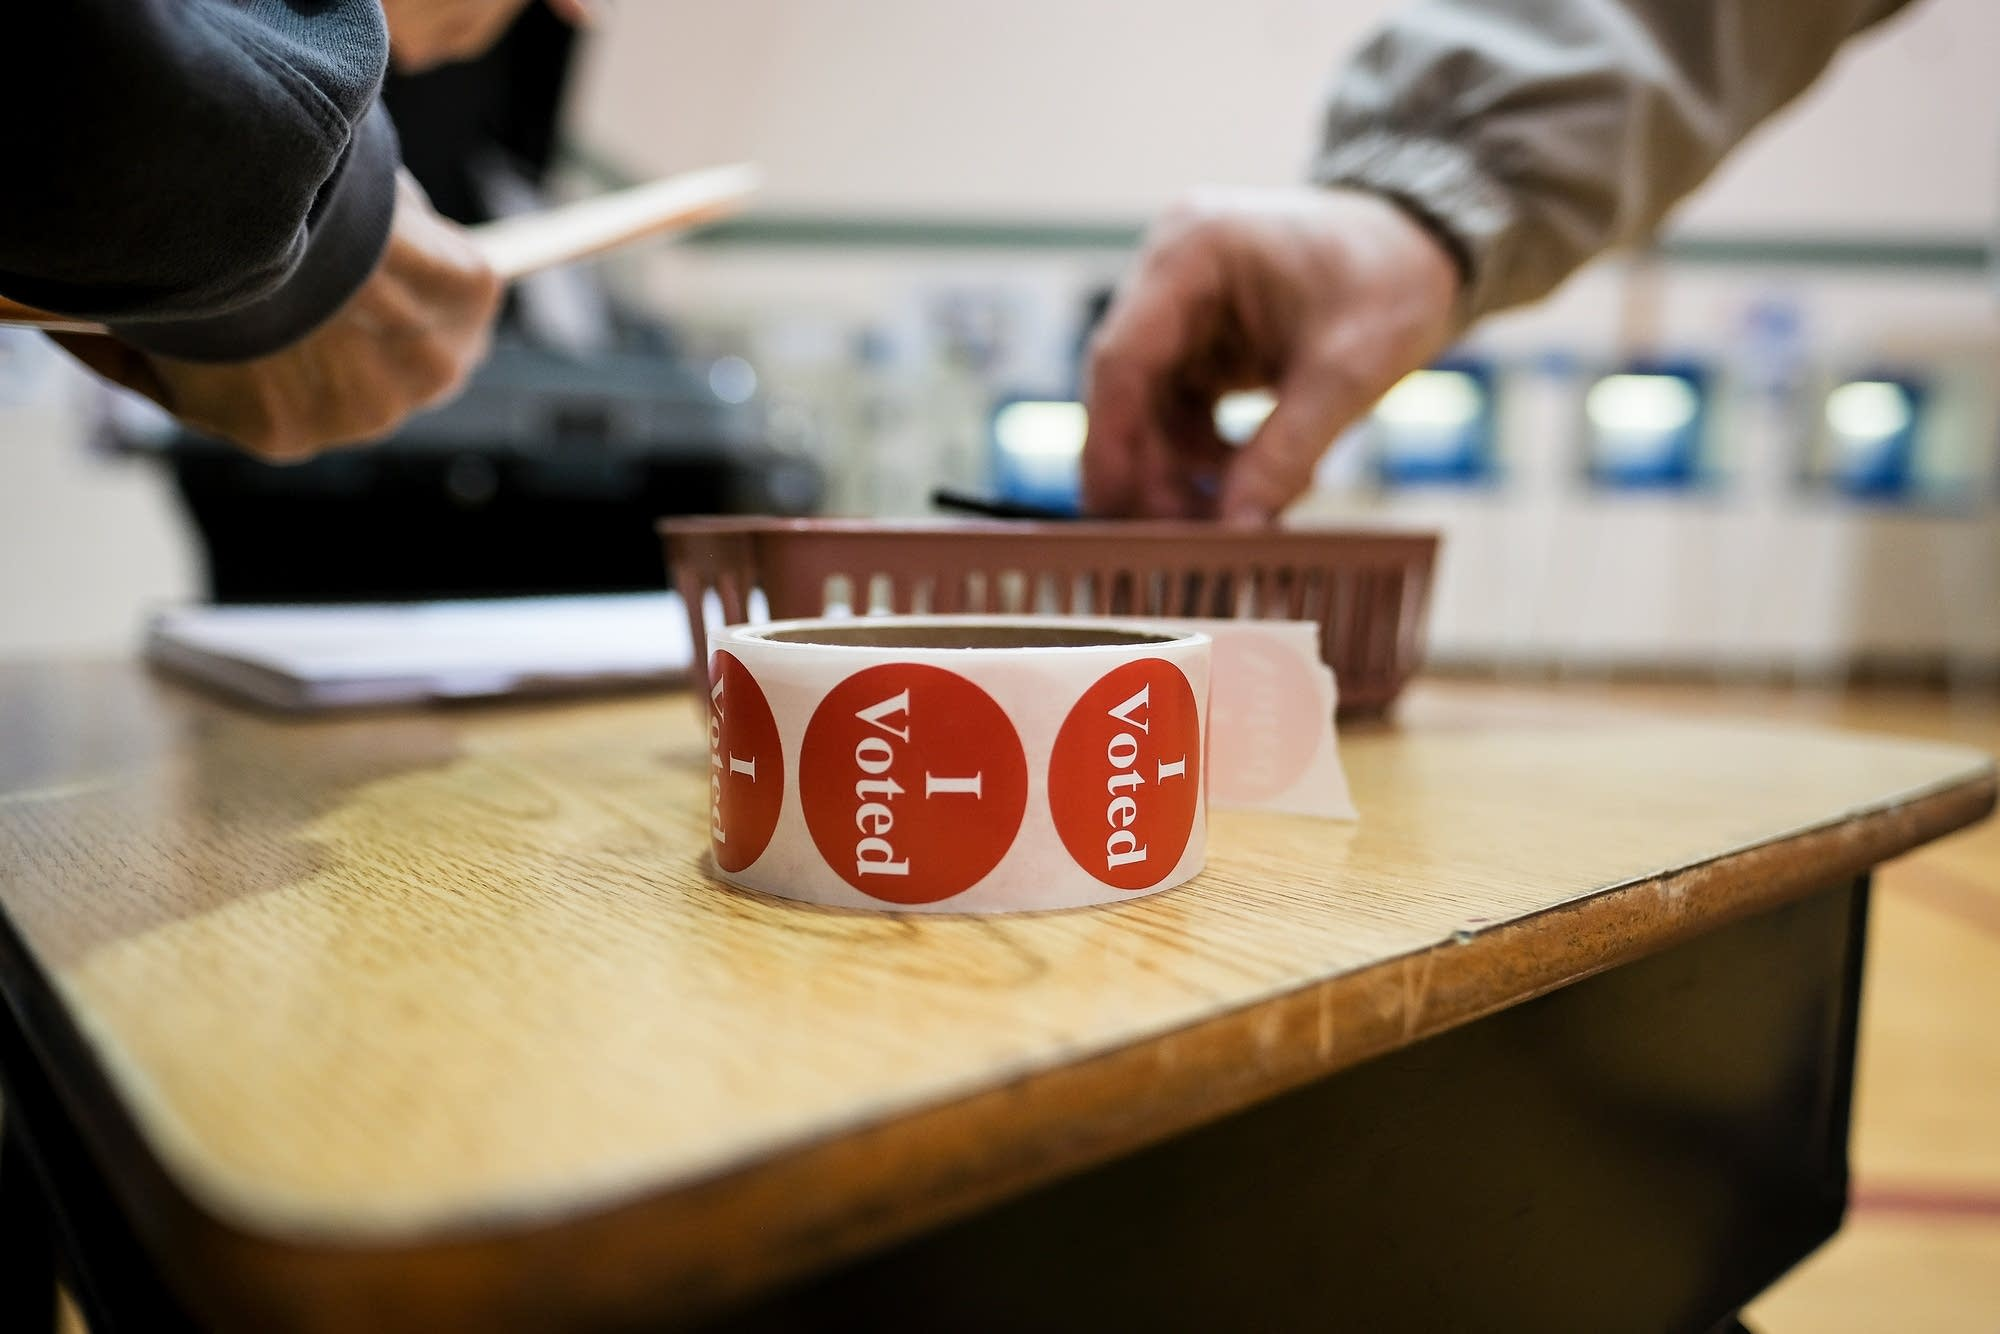 A voter takes a sticker after casting his ballot.